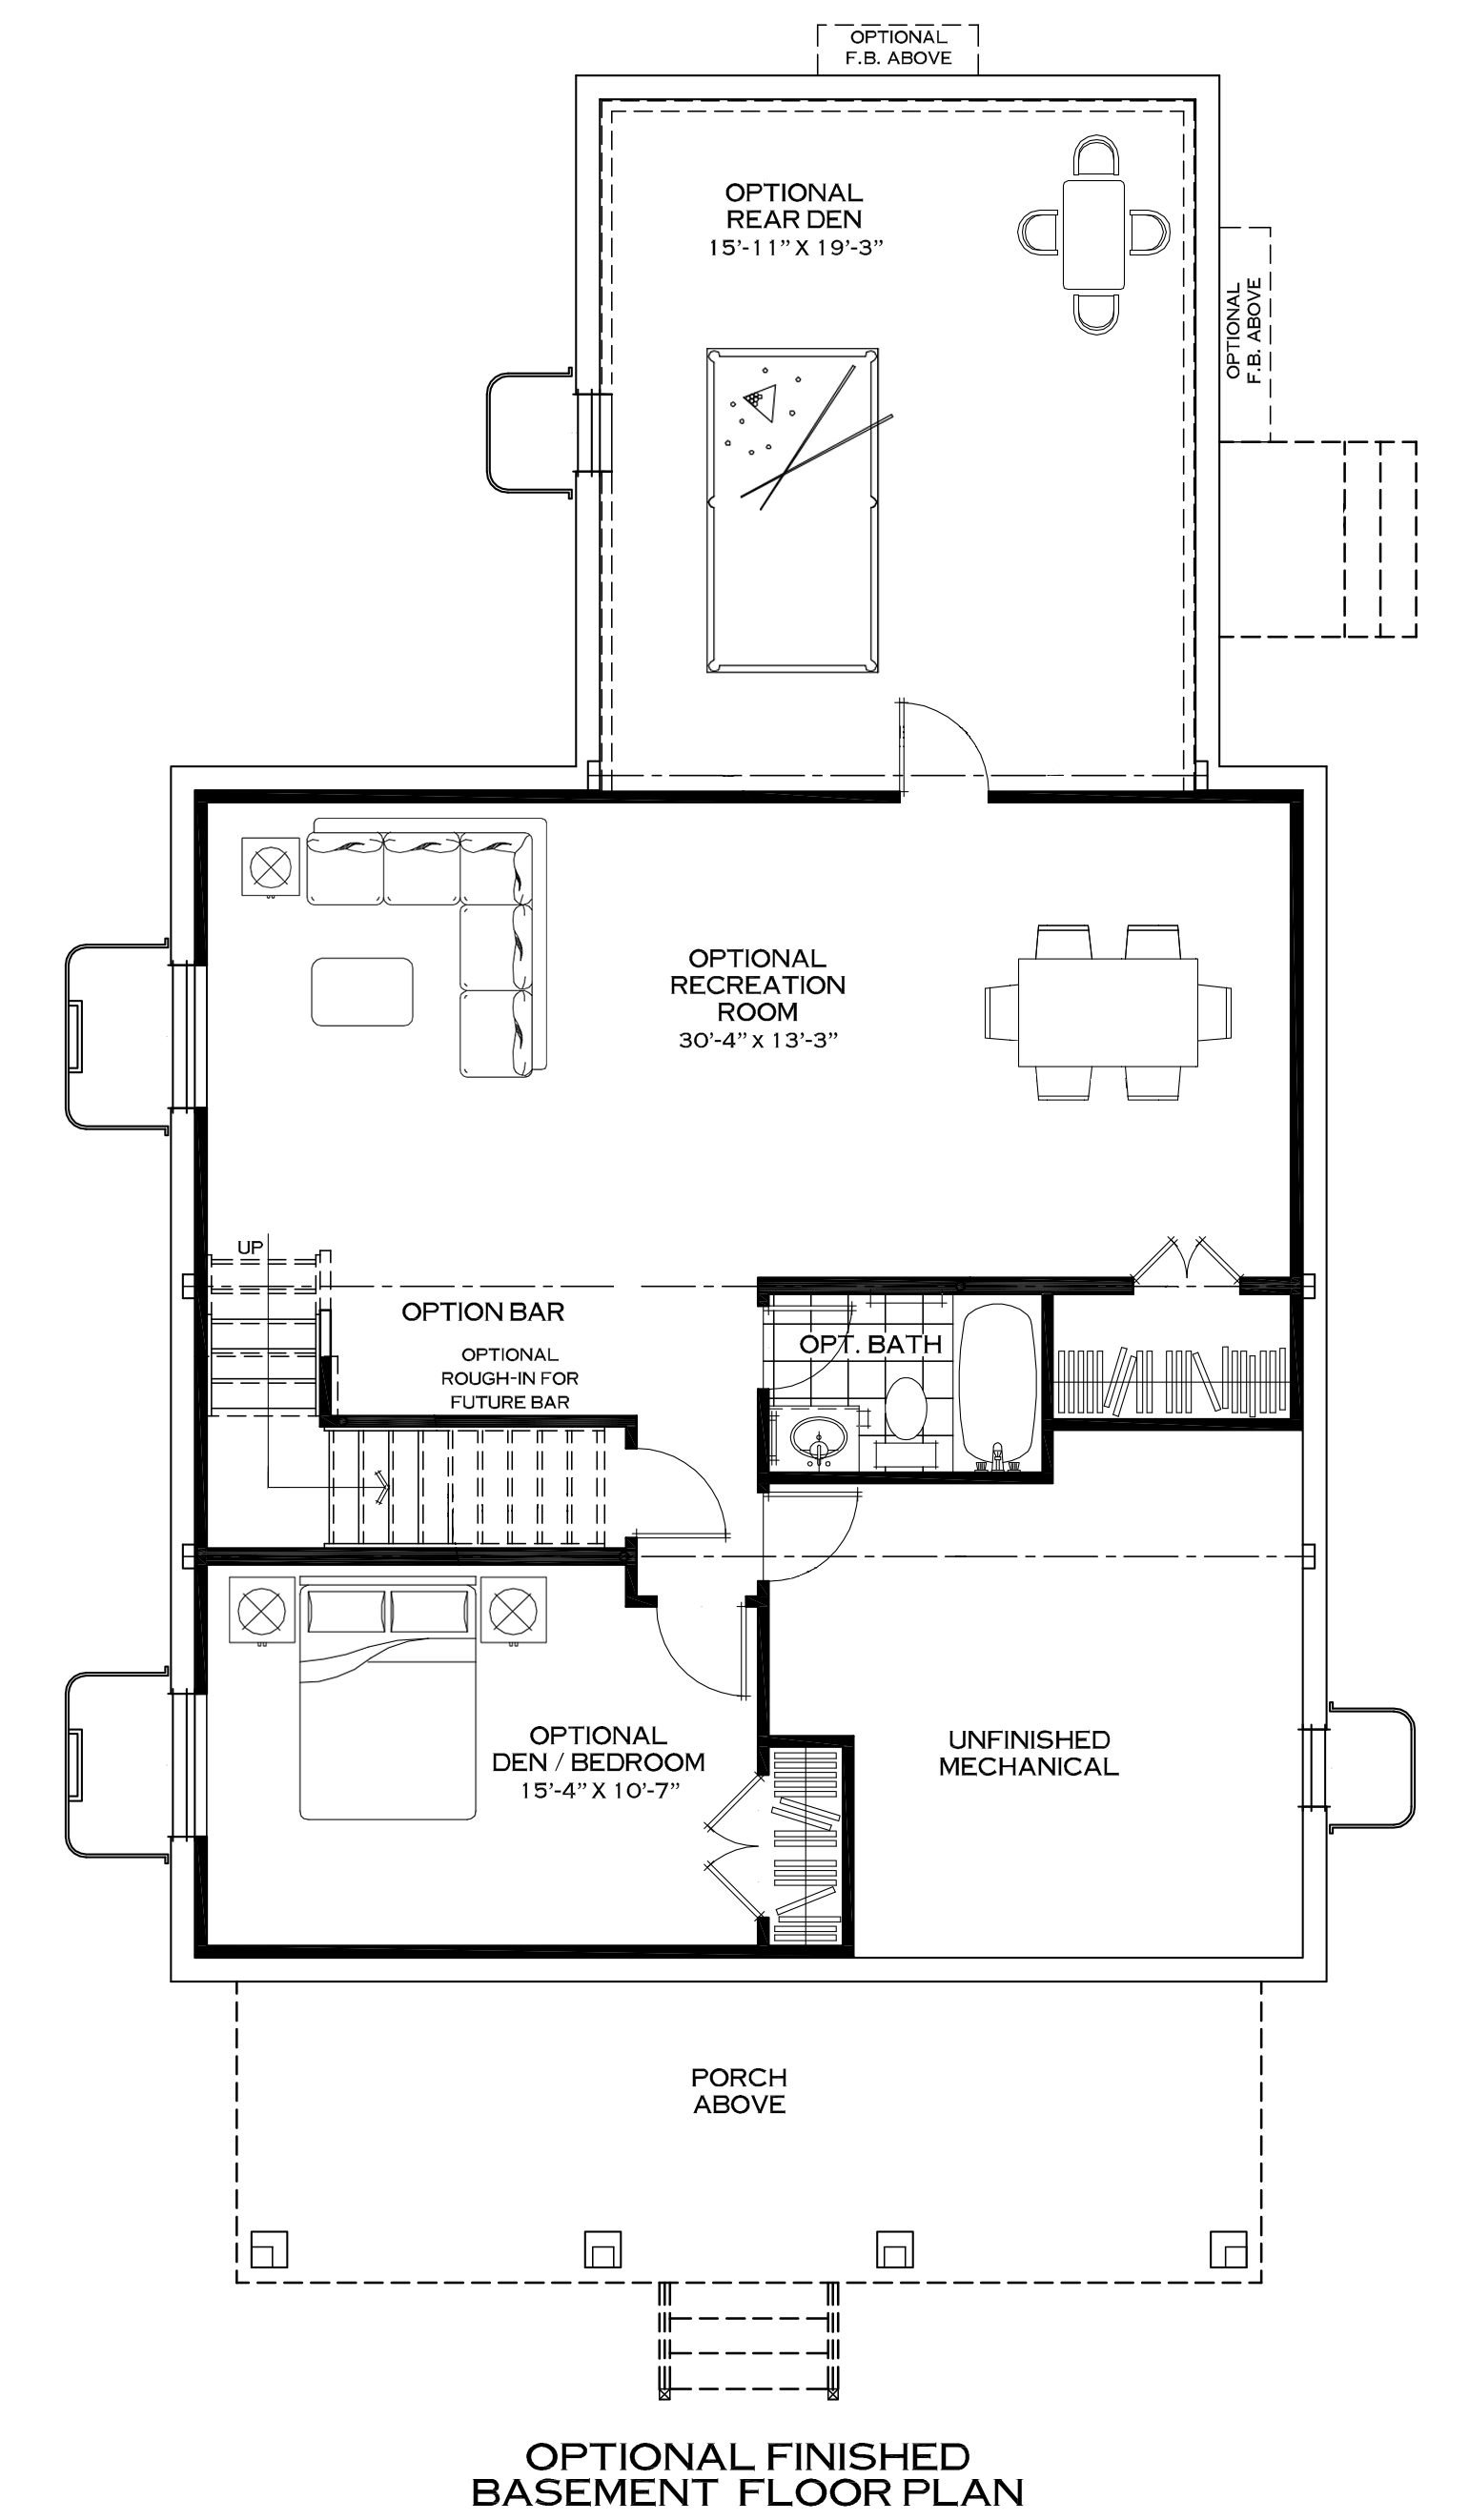 1-Chestertown S-D Opt Finish Basement.png